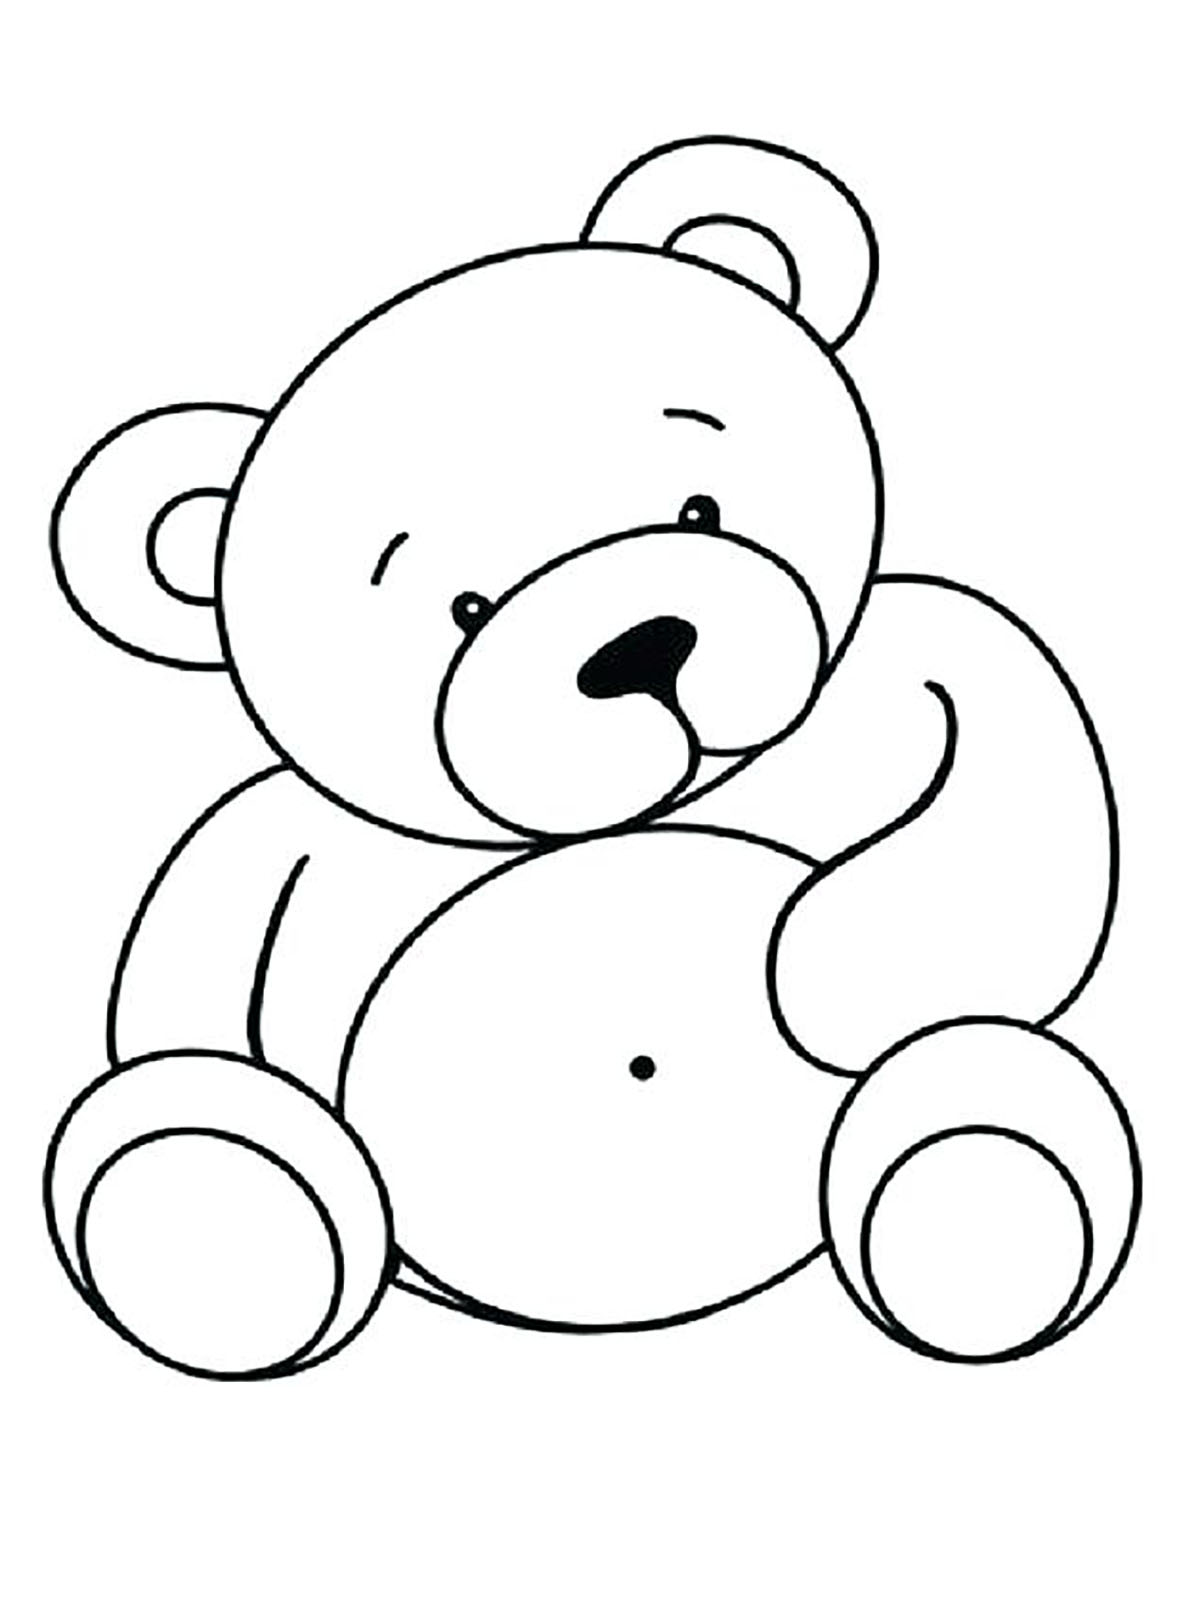 Fun and Easy Bears Coloring Pages